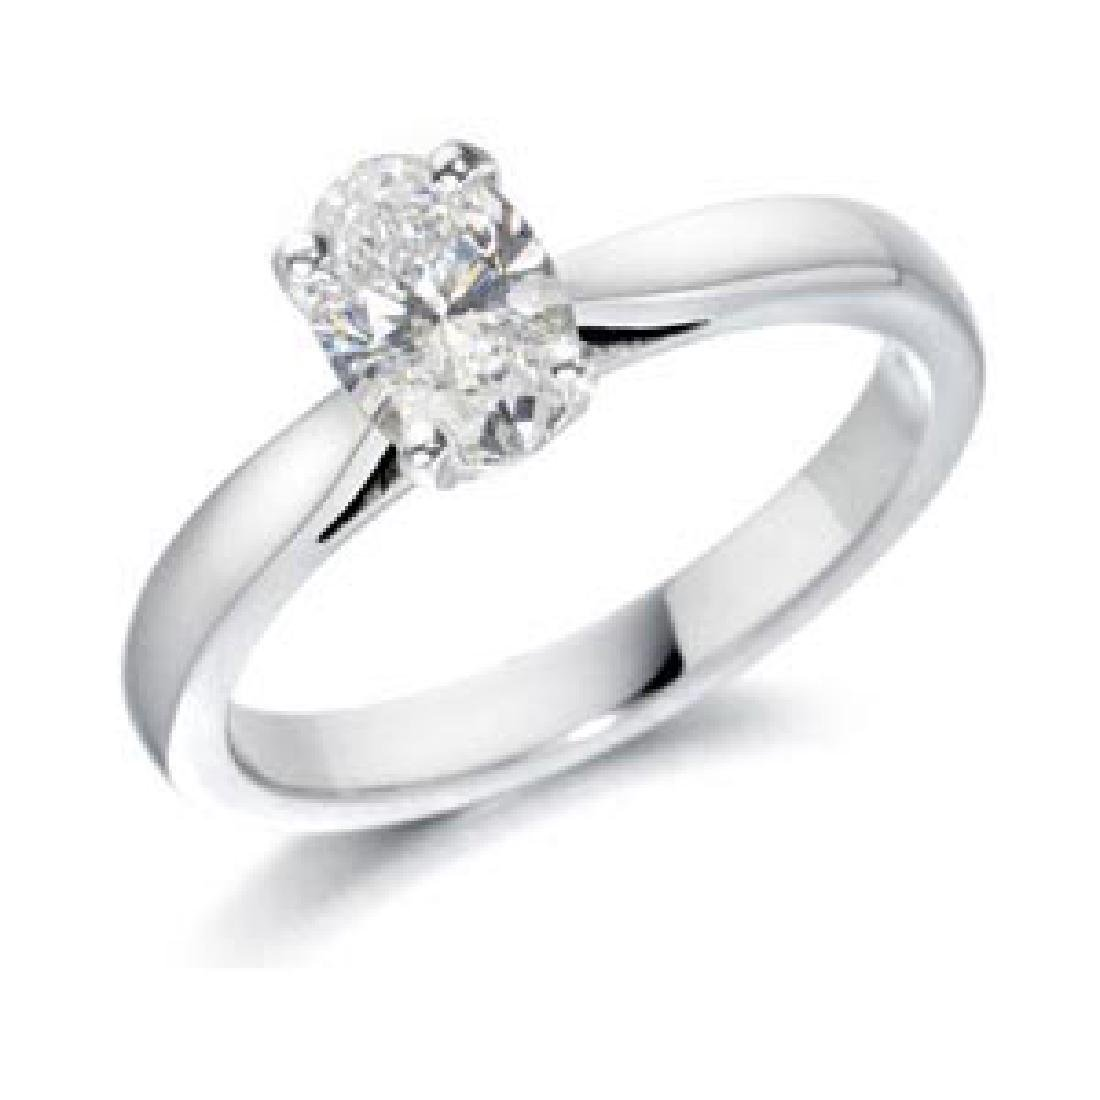 CERTIFED 0.82 CTW OVAL SOLITAIRE 14K WHITE GOLD DIAMOND